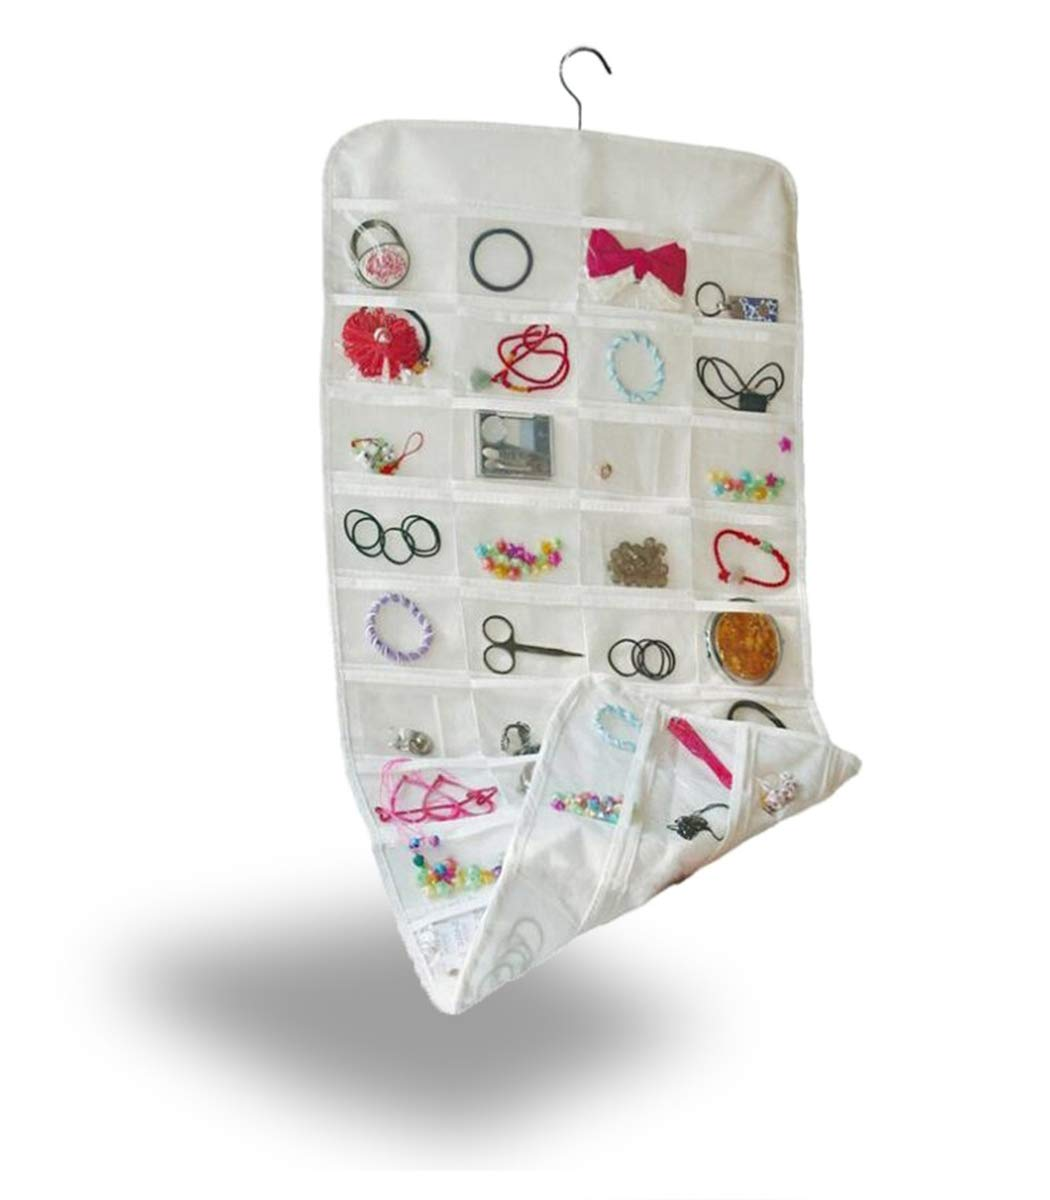 Double-Sided Jewelry Hanging Organizer Display Hanger Small Tools Holder with 80 Clear Pockets (White)